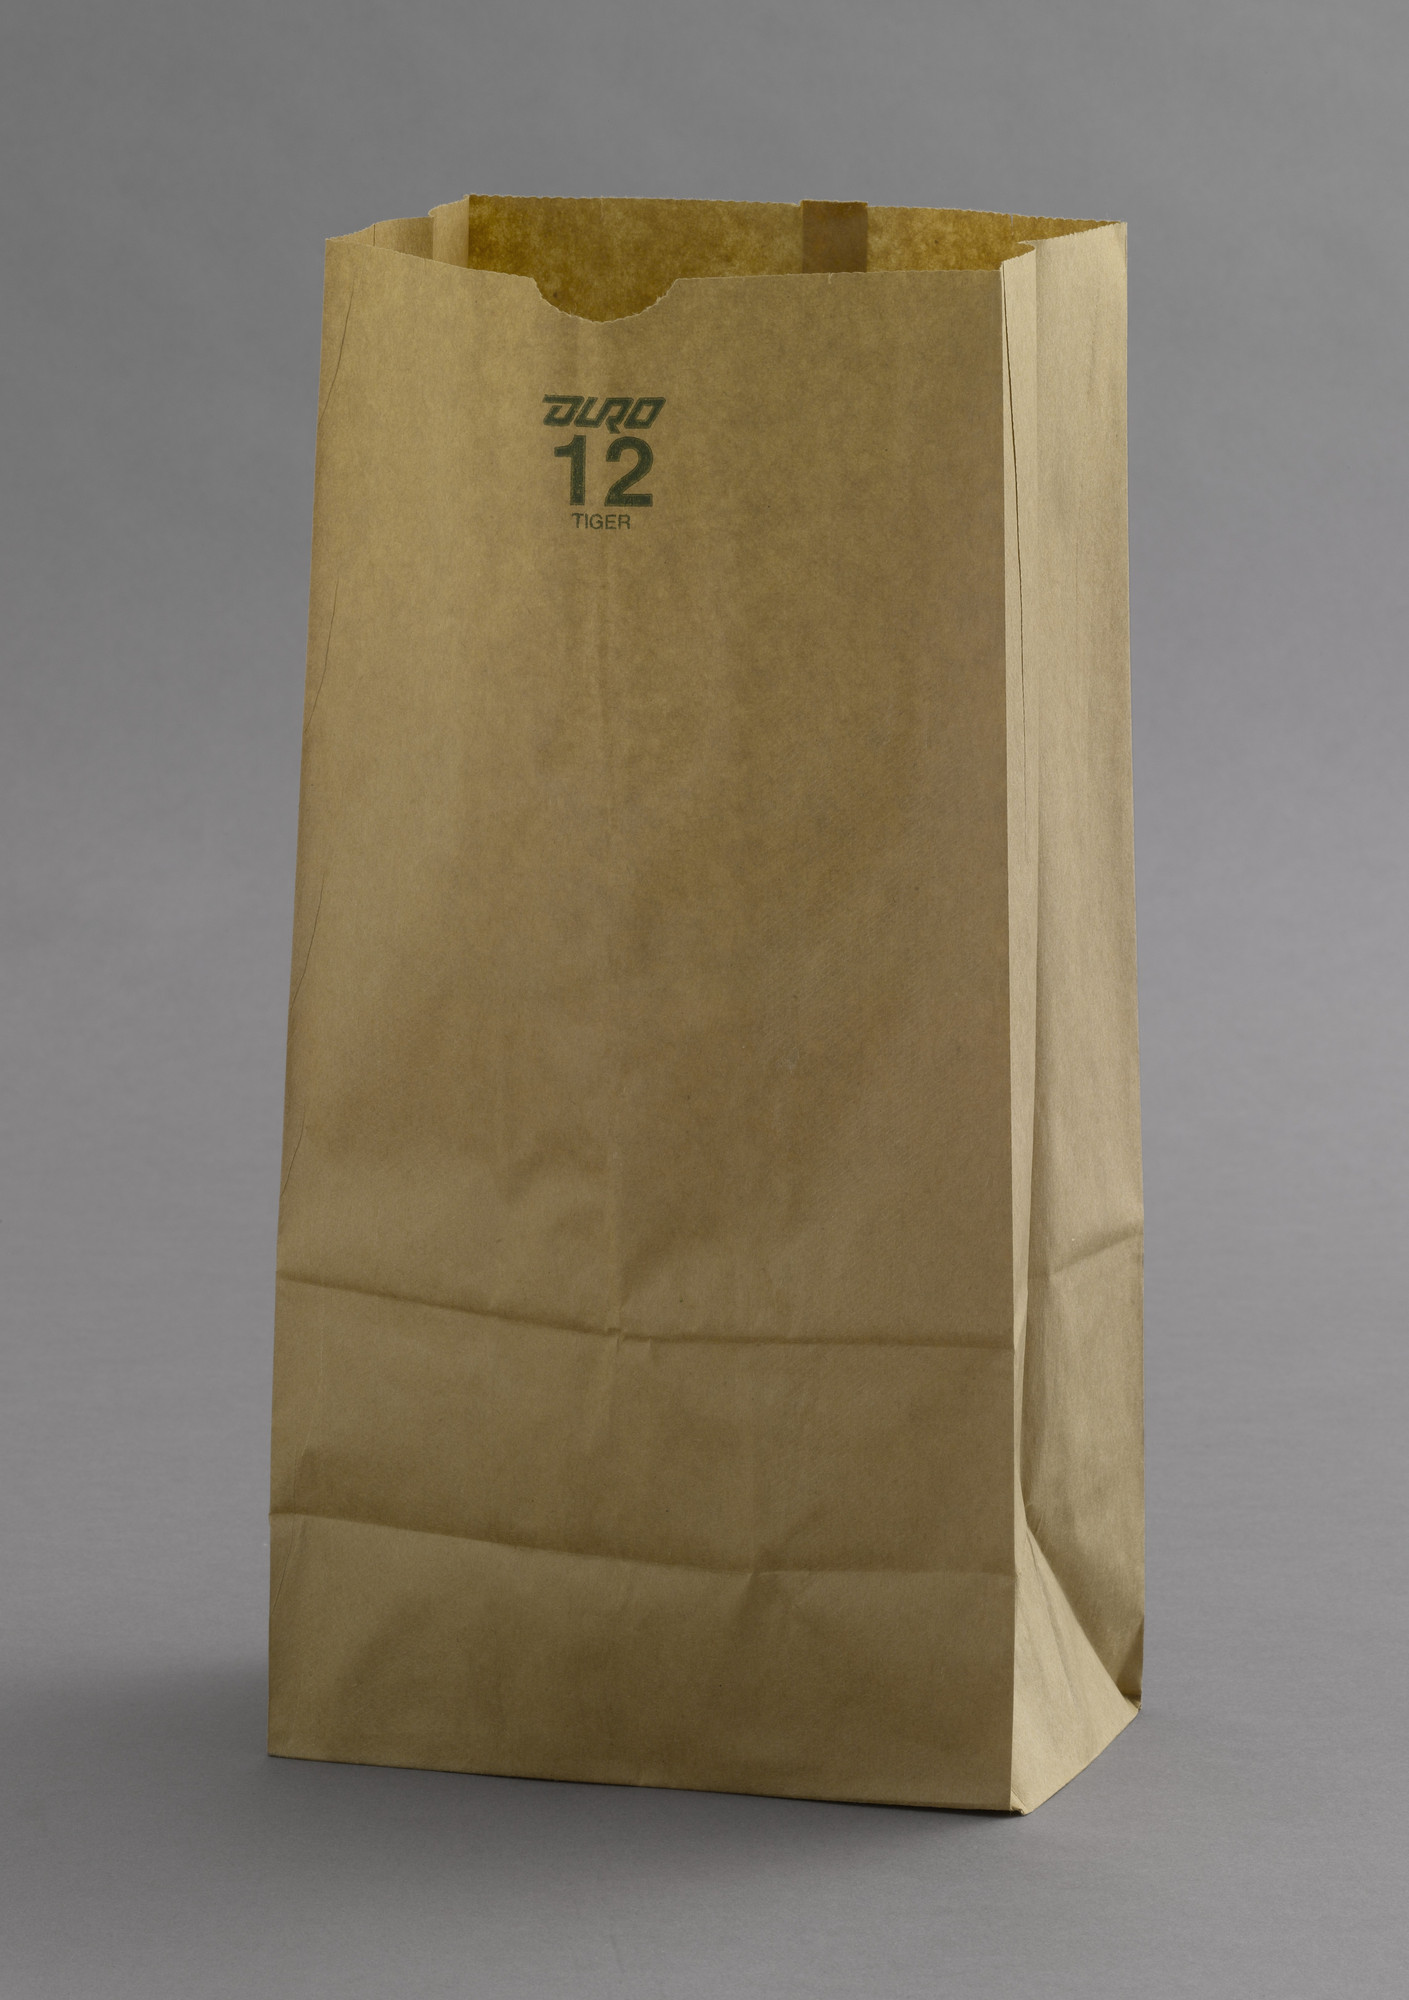 Margaret E. Knight, Charles B. Stilwell. Flat-Bottomed Paper Bag. Designed 1870s-1880s